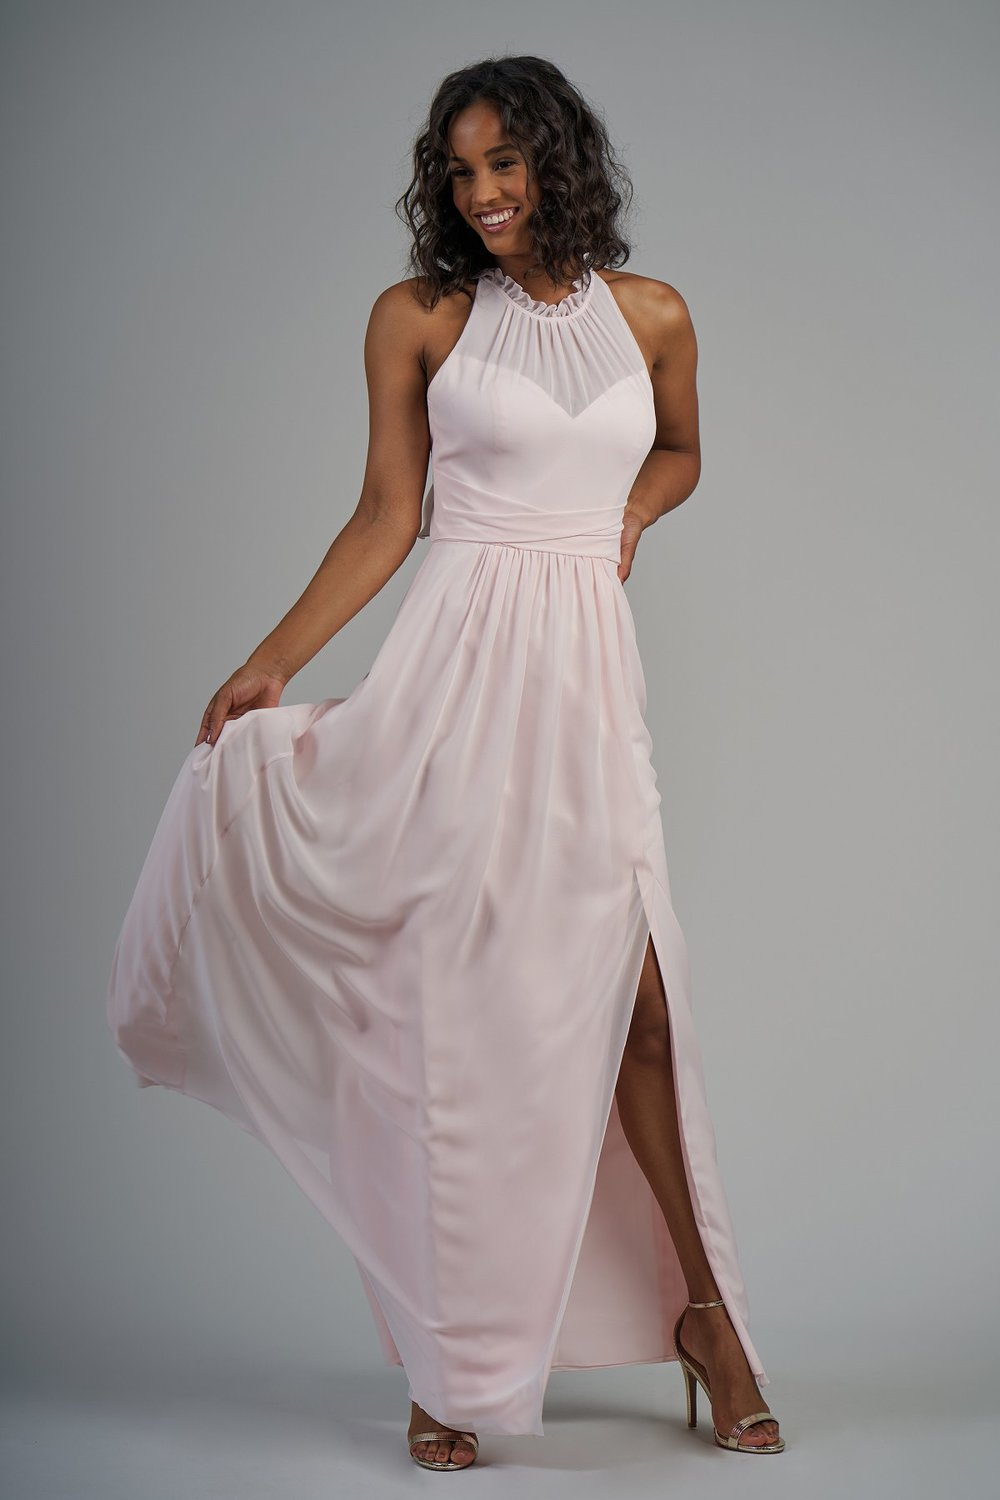 B213002 -  Beautiful poly chiffon floor length bridesmaid dress with a ruffled jewel neckline and gathers on the bodice. Pretty ruffle details on the back bodice, detailed gathers on the skirt, and a front slit to complete the look.   Available in 56 Colors